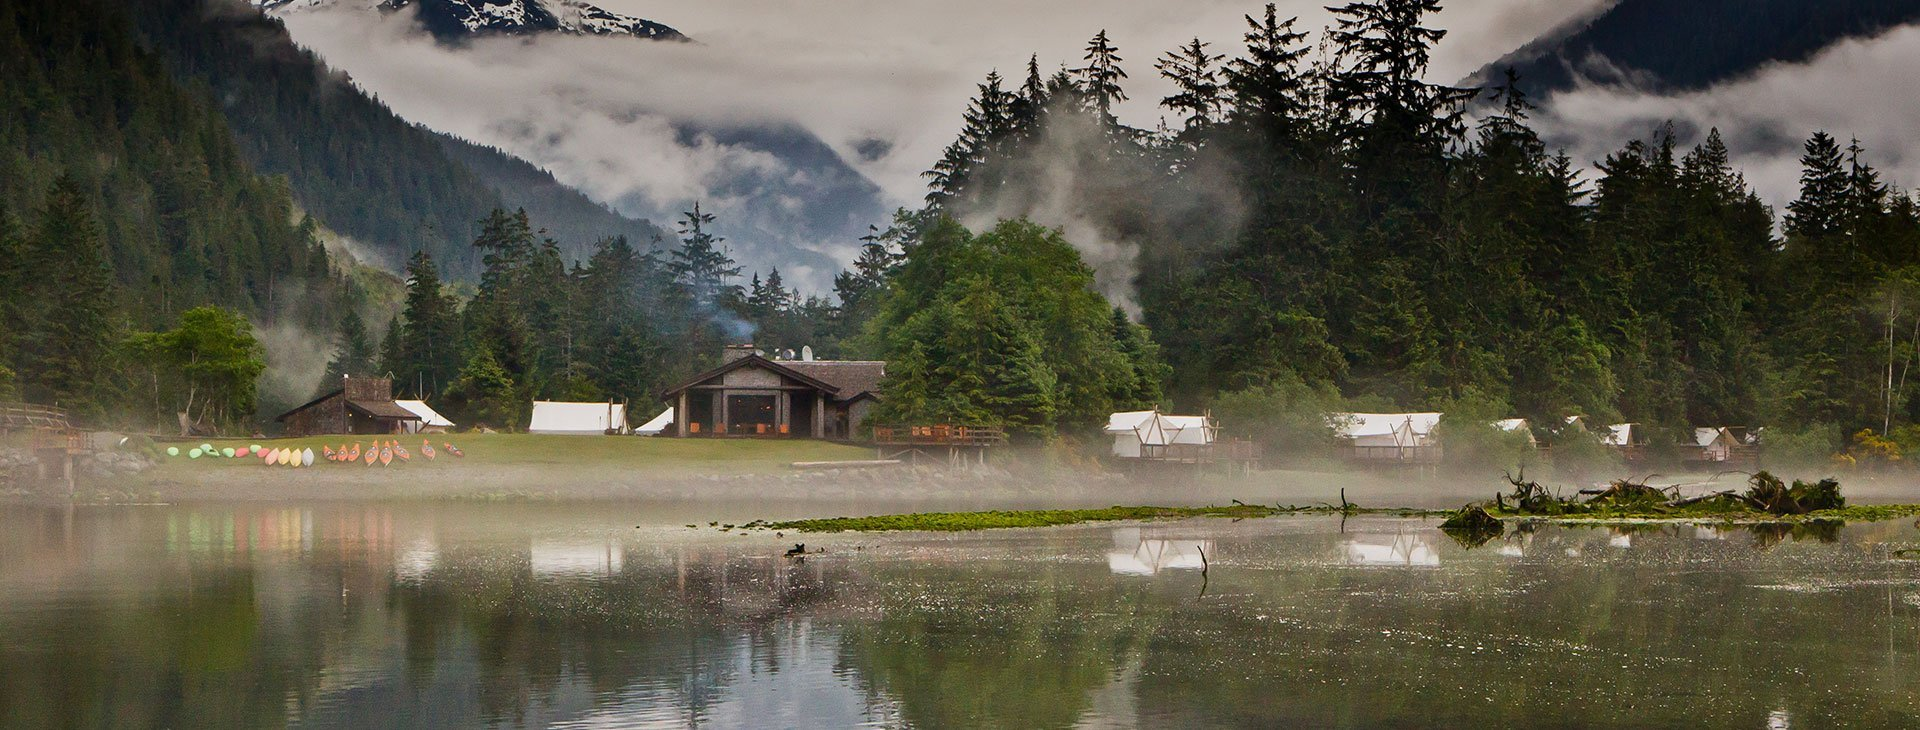 places_to_see_clayoquot_wilderness_resort_stage